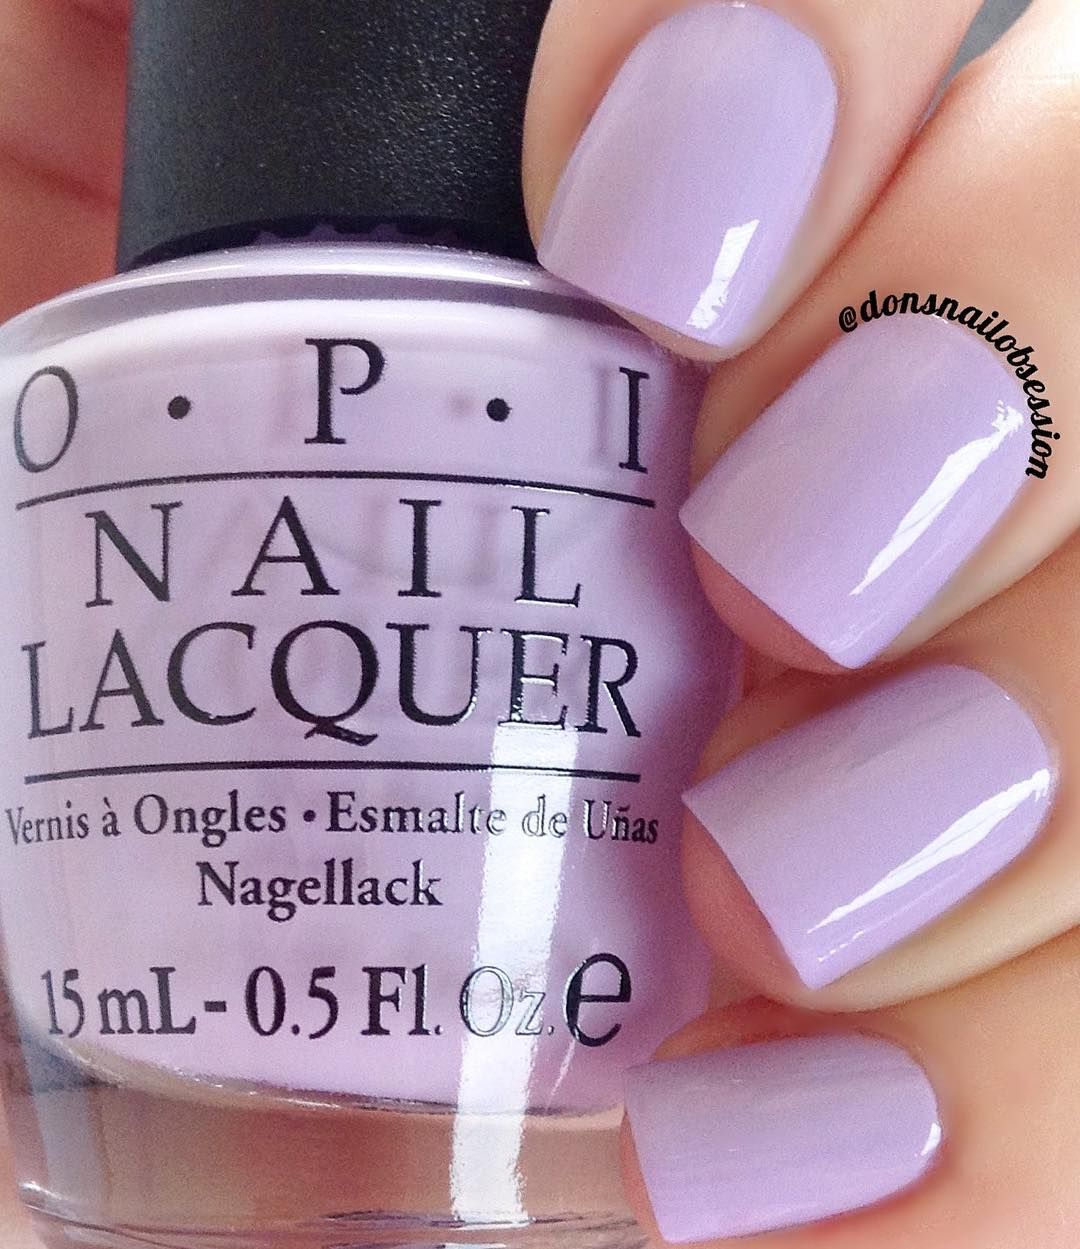 opi Polly Want A Lacquer?\